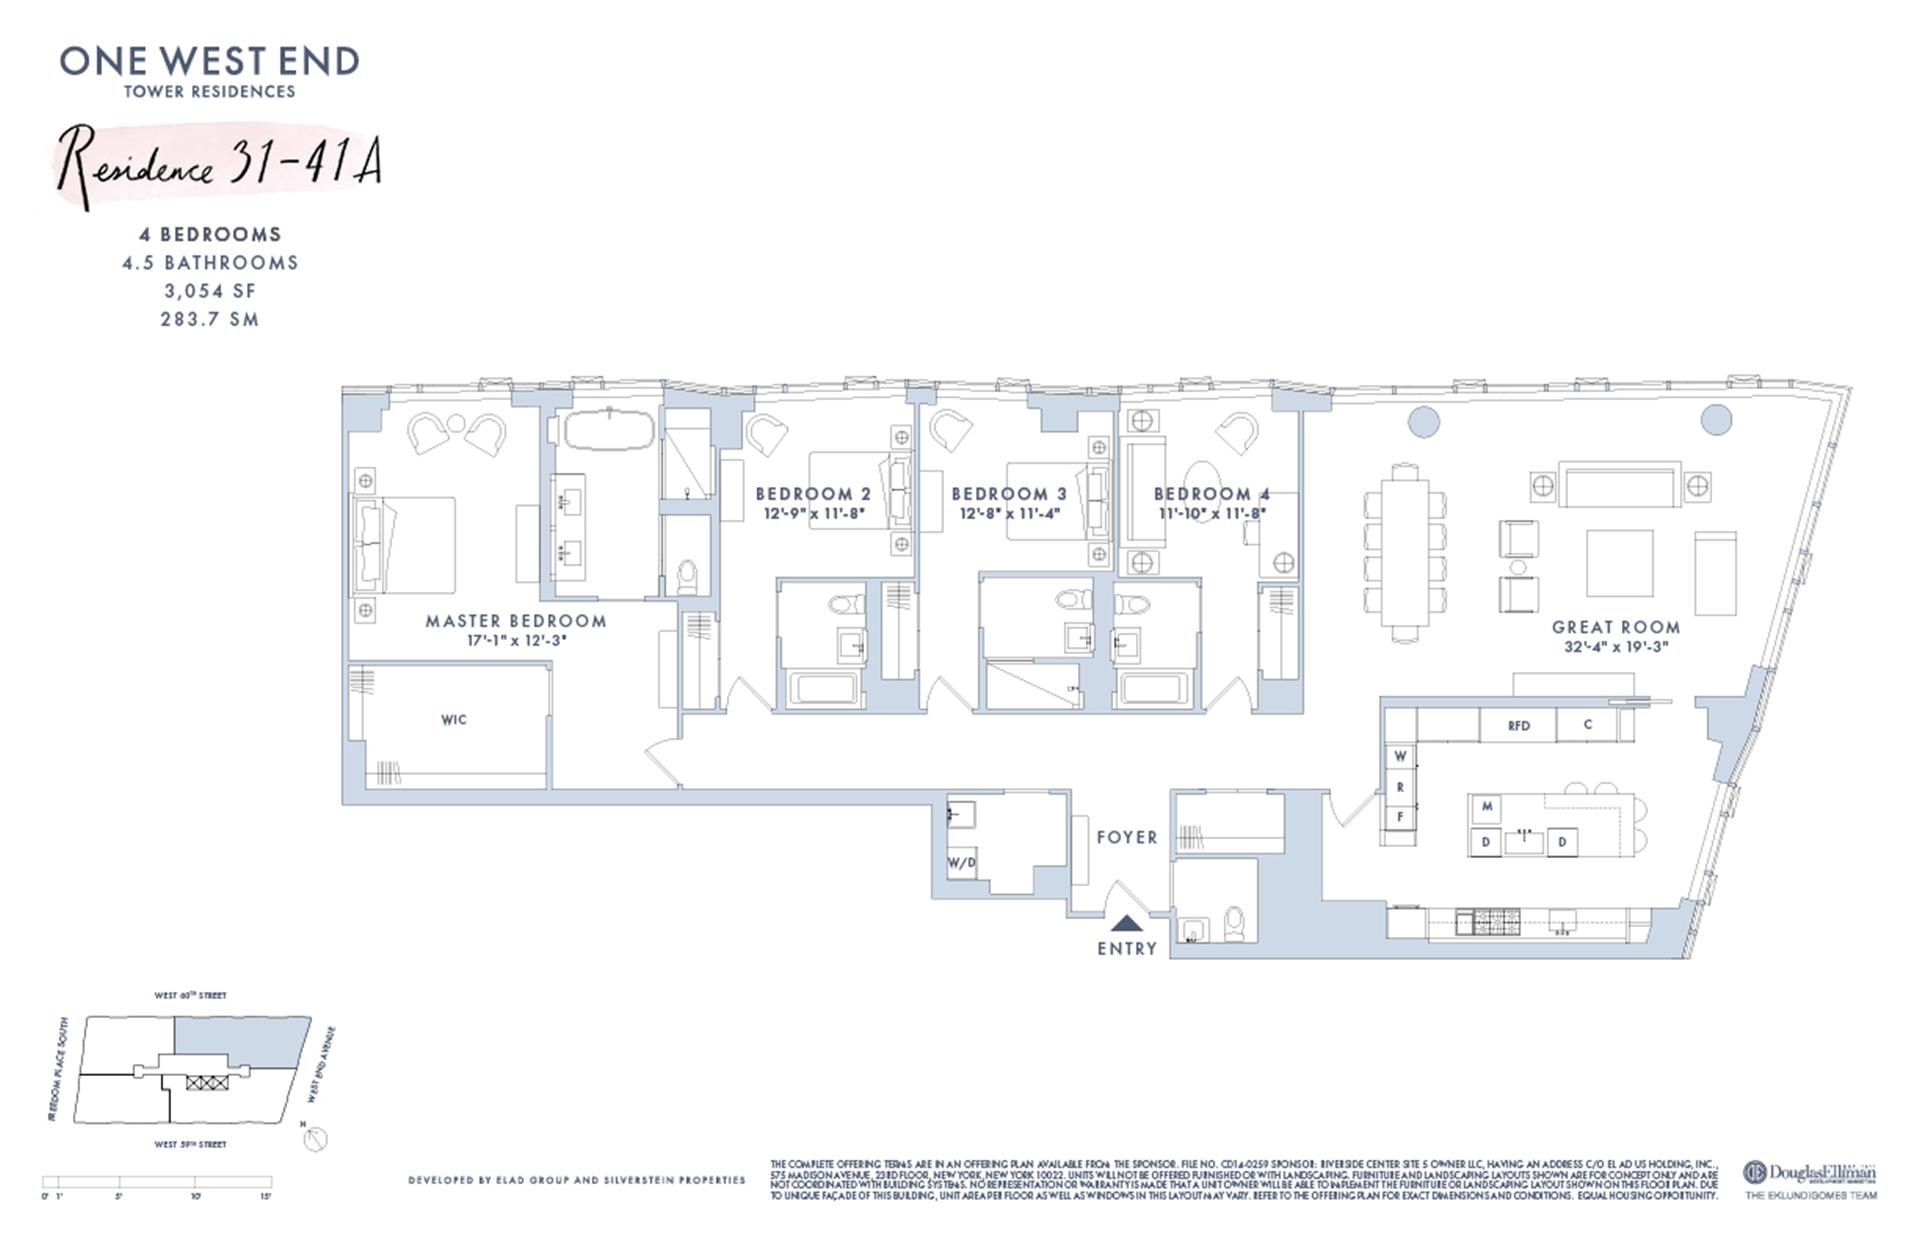 Floor plan of One West End, 1 West End Avenue, 37A - Upper West Side, New York